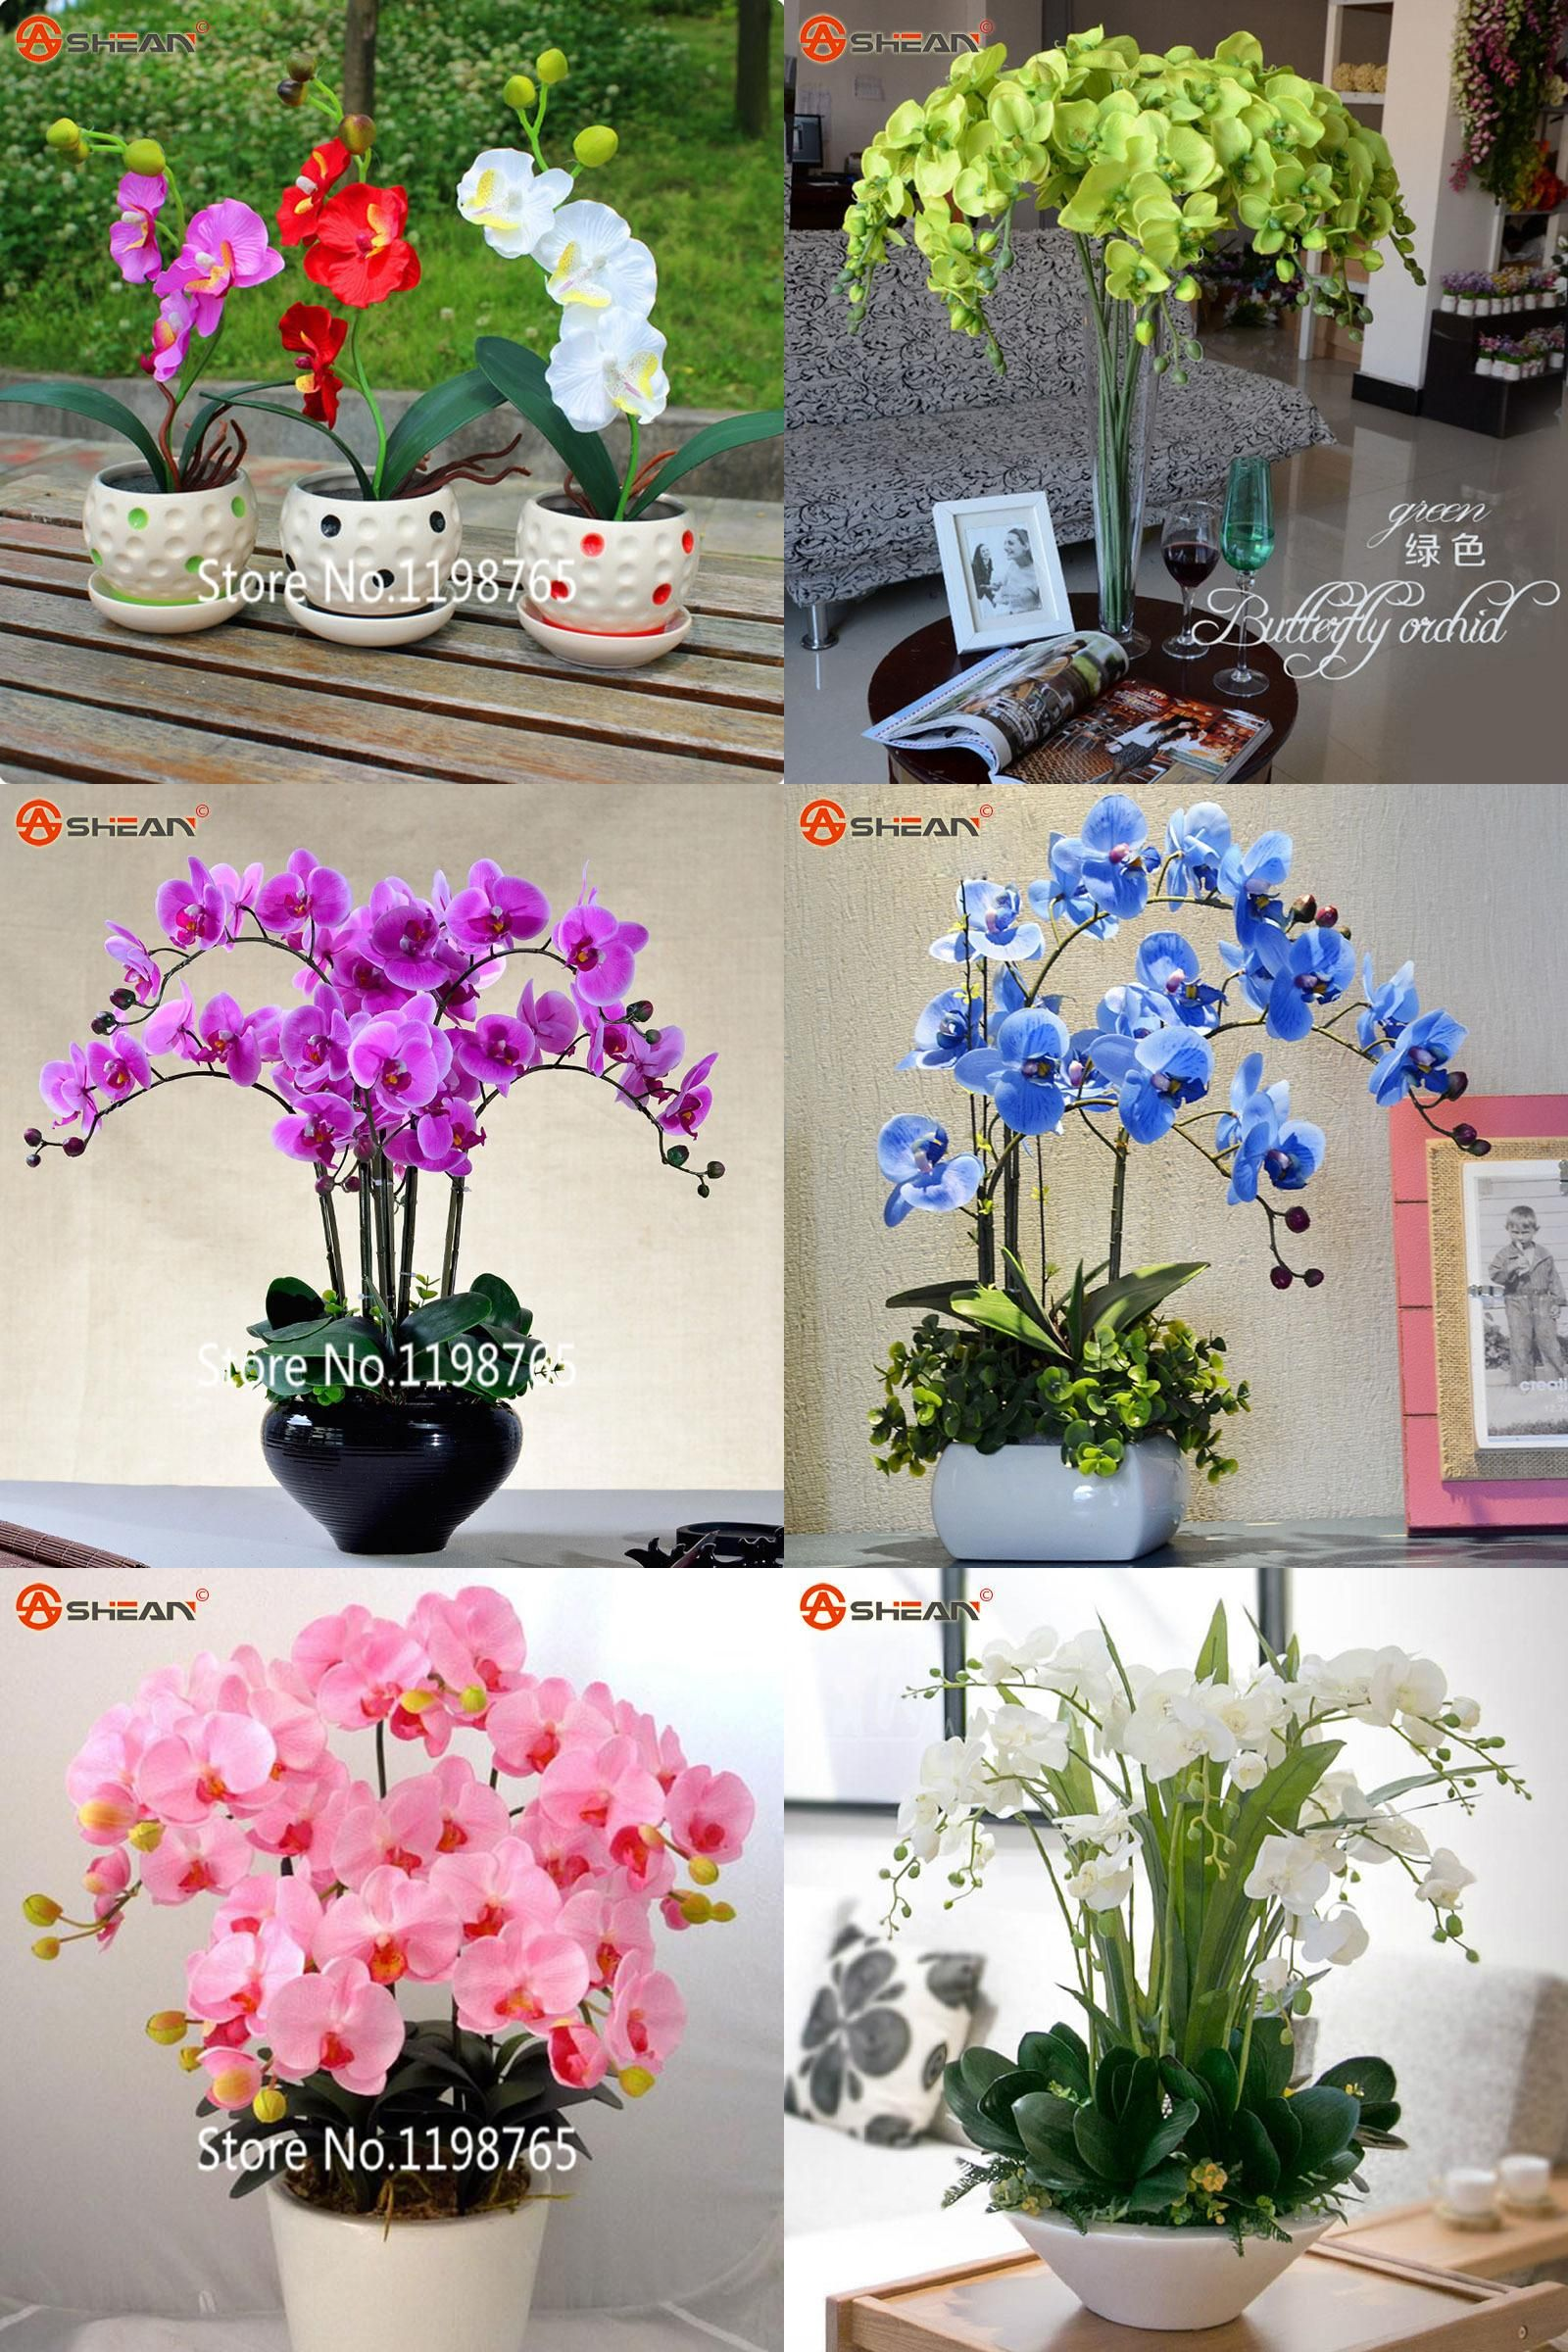 Visit to buy new arrival pcs phalaenopsis orchid seeds